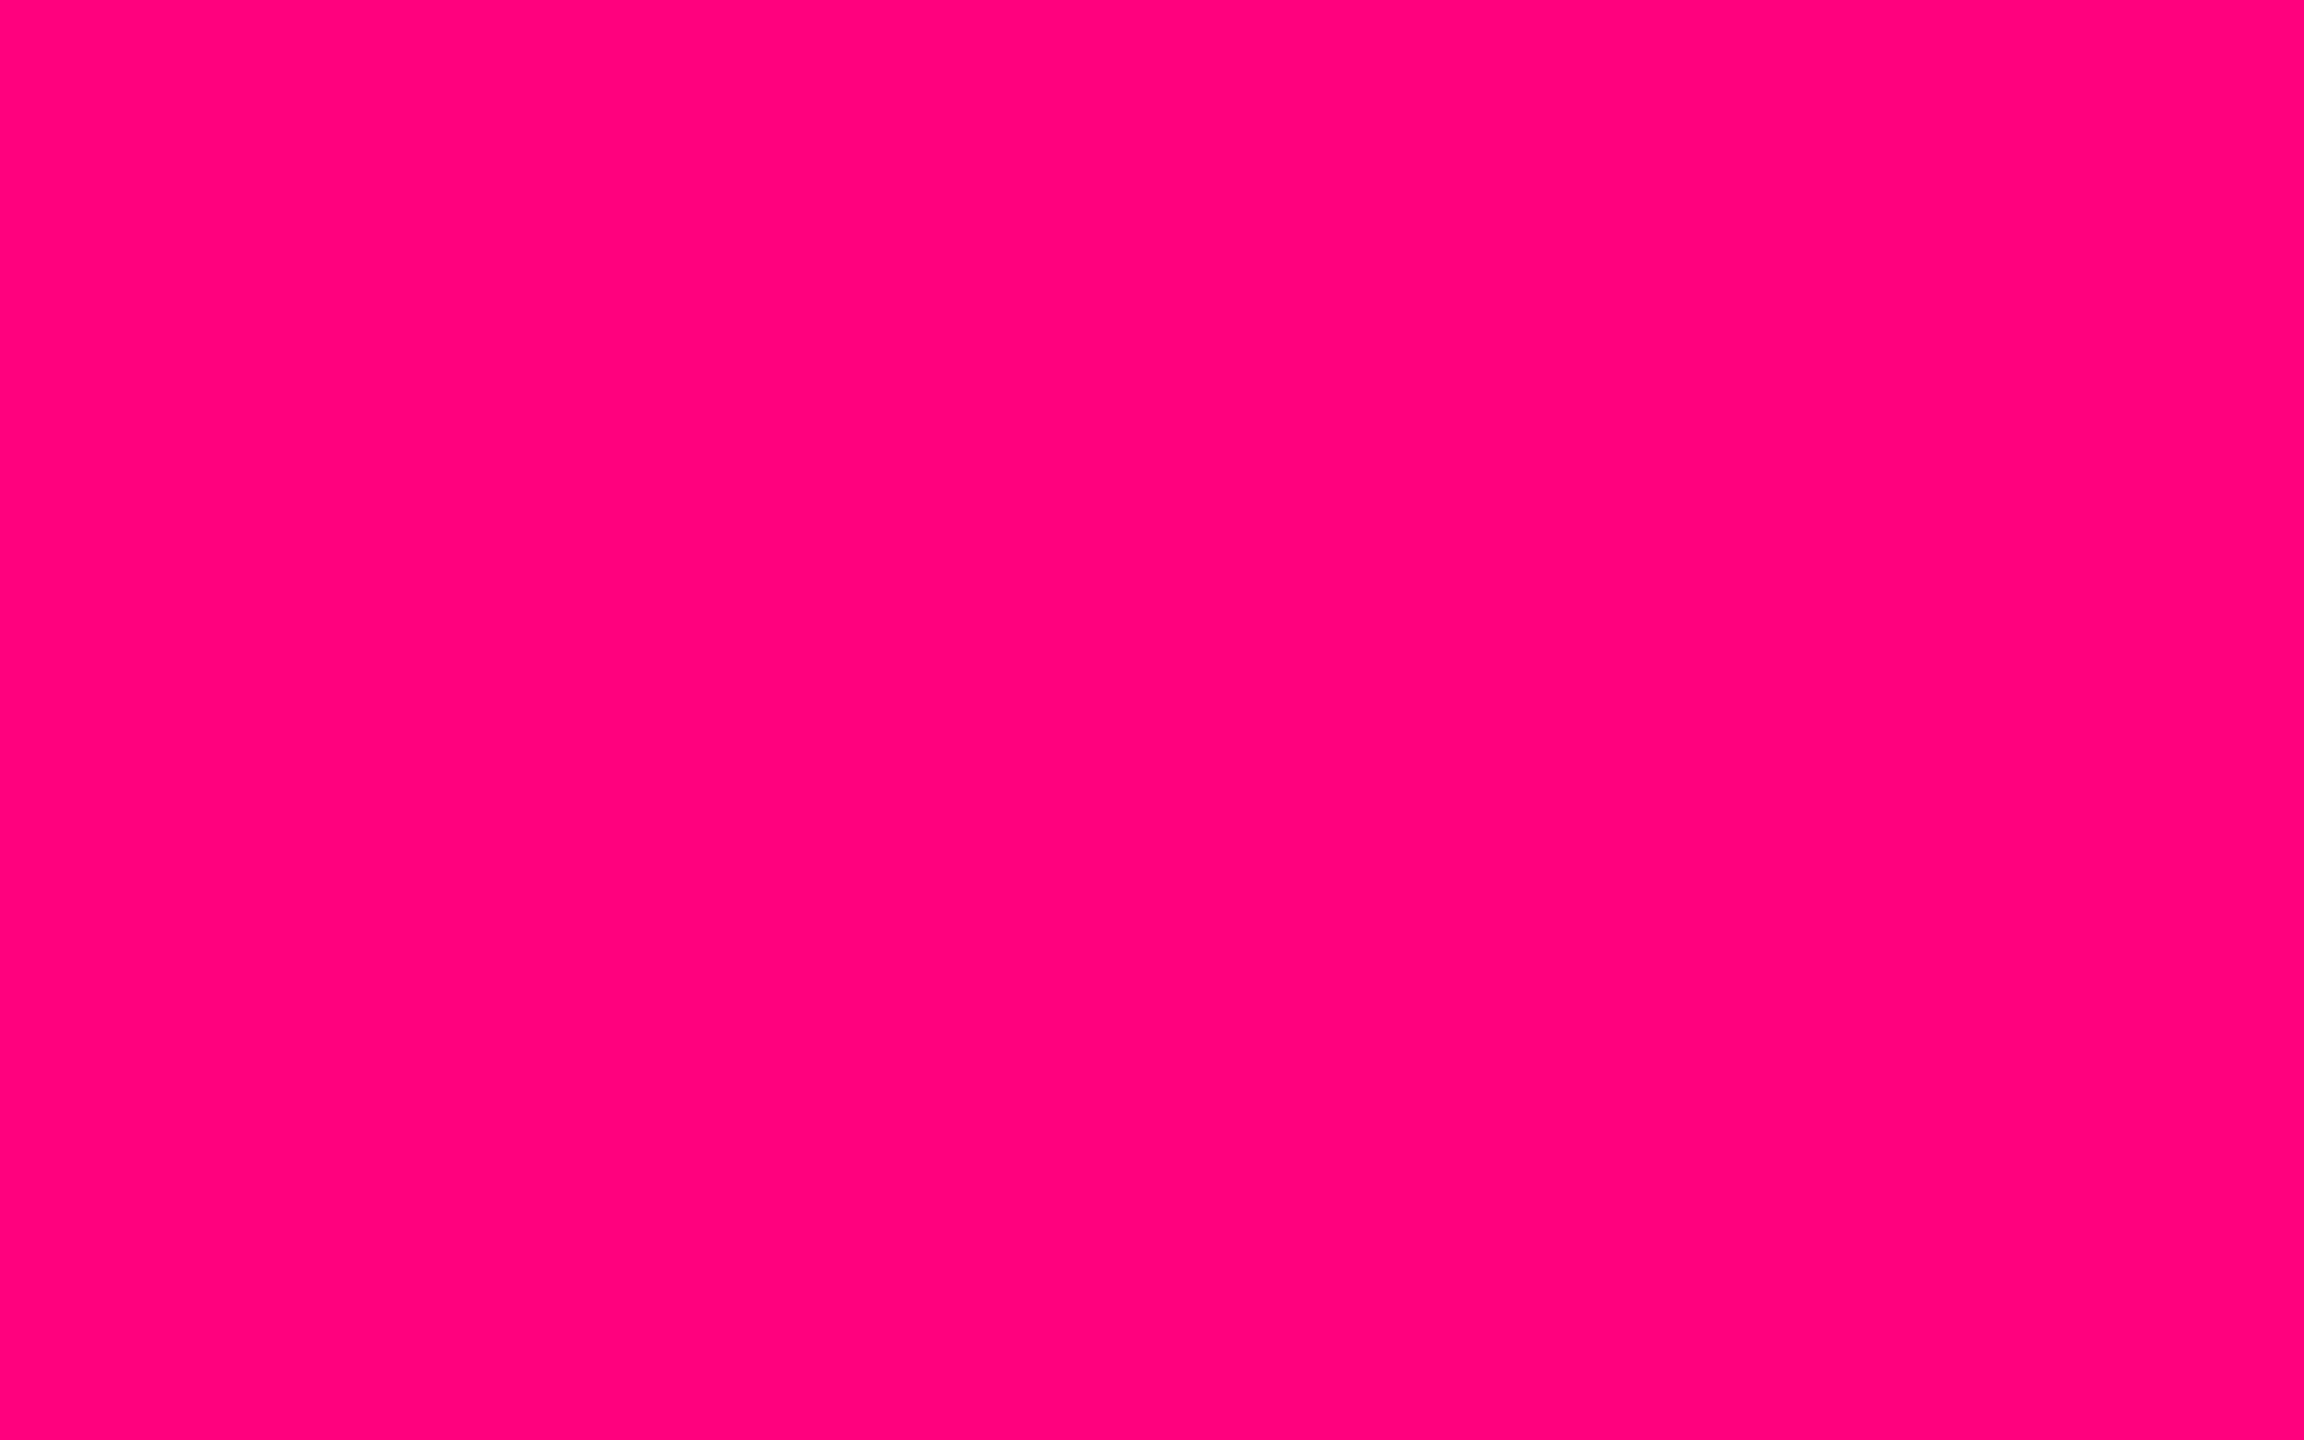 2304x1440 Bright Pink Solid Color Background